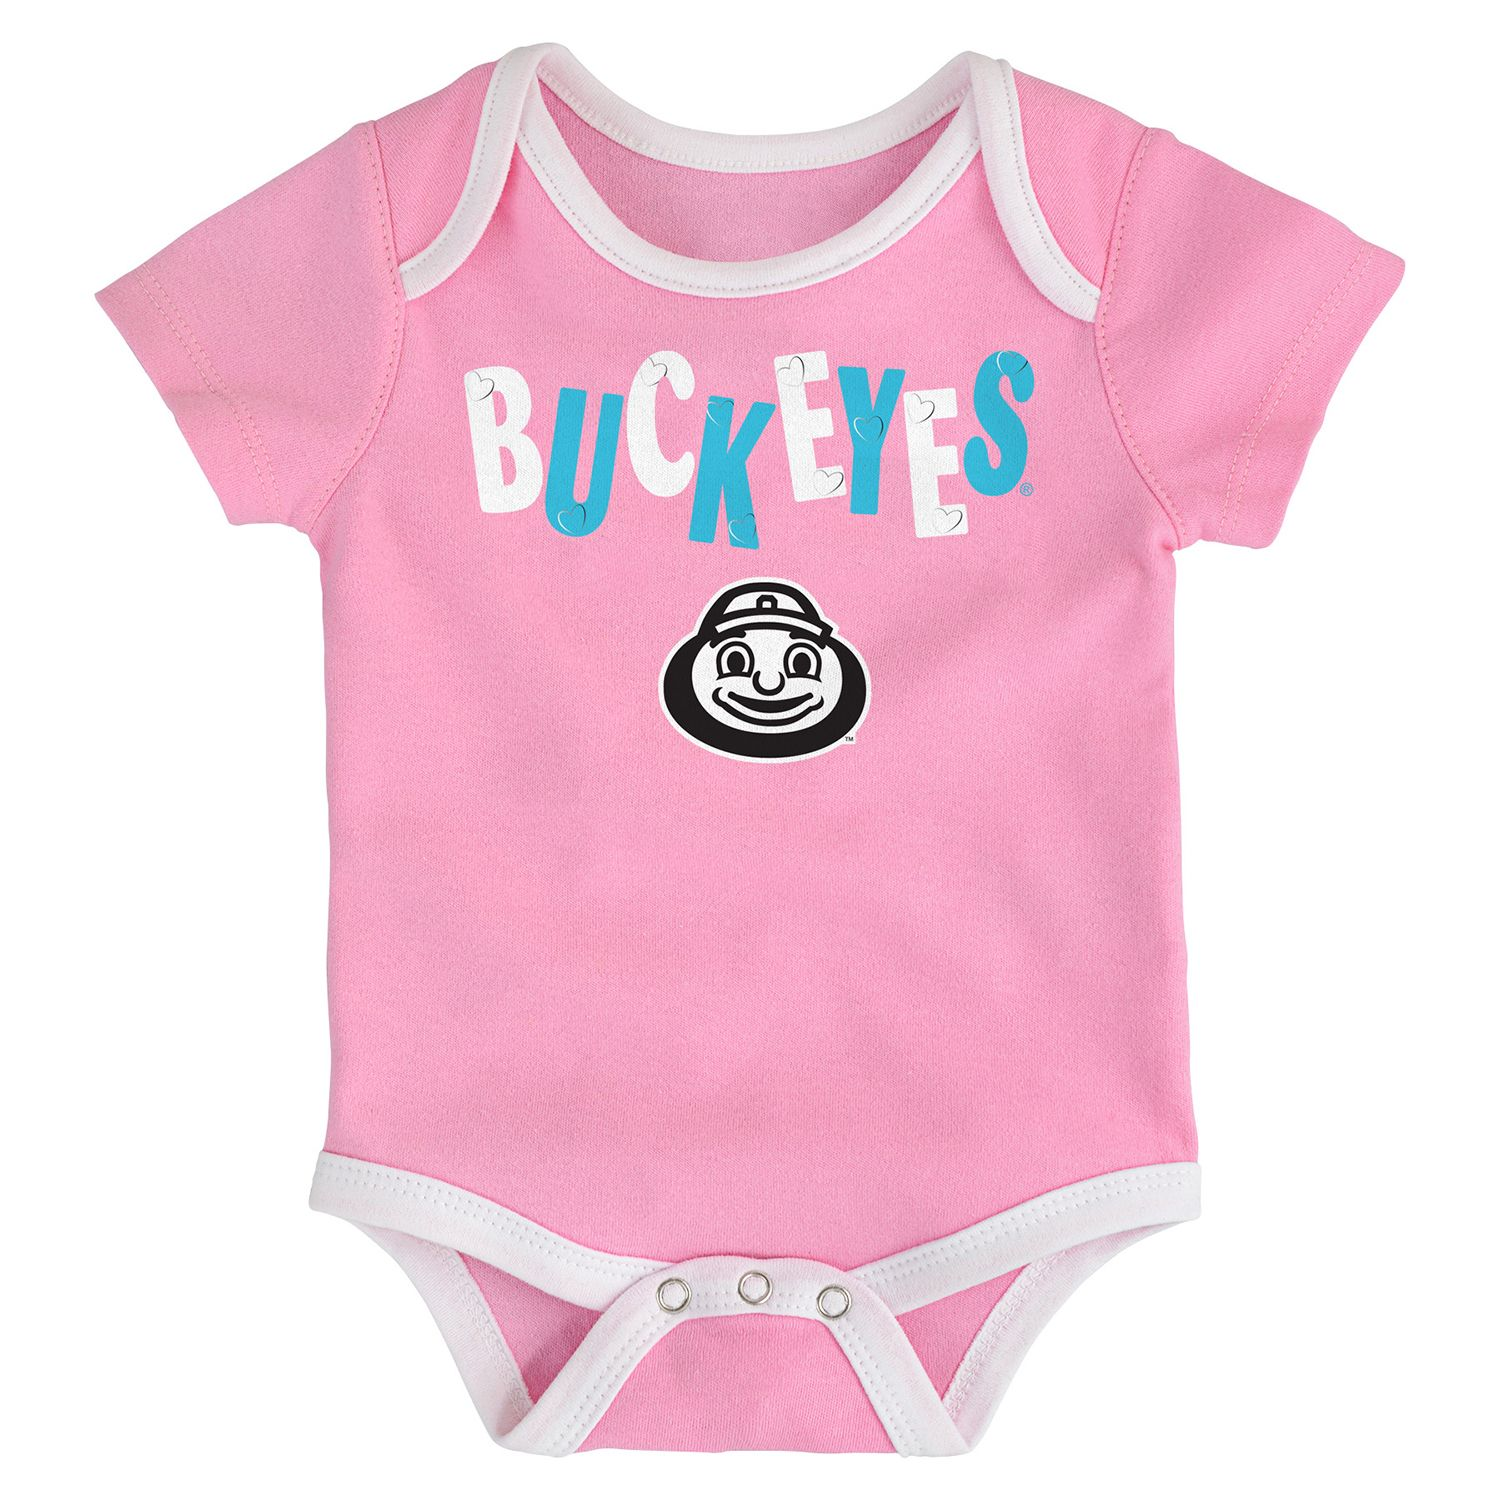 NCAA Sports Fan Kids Clothing